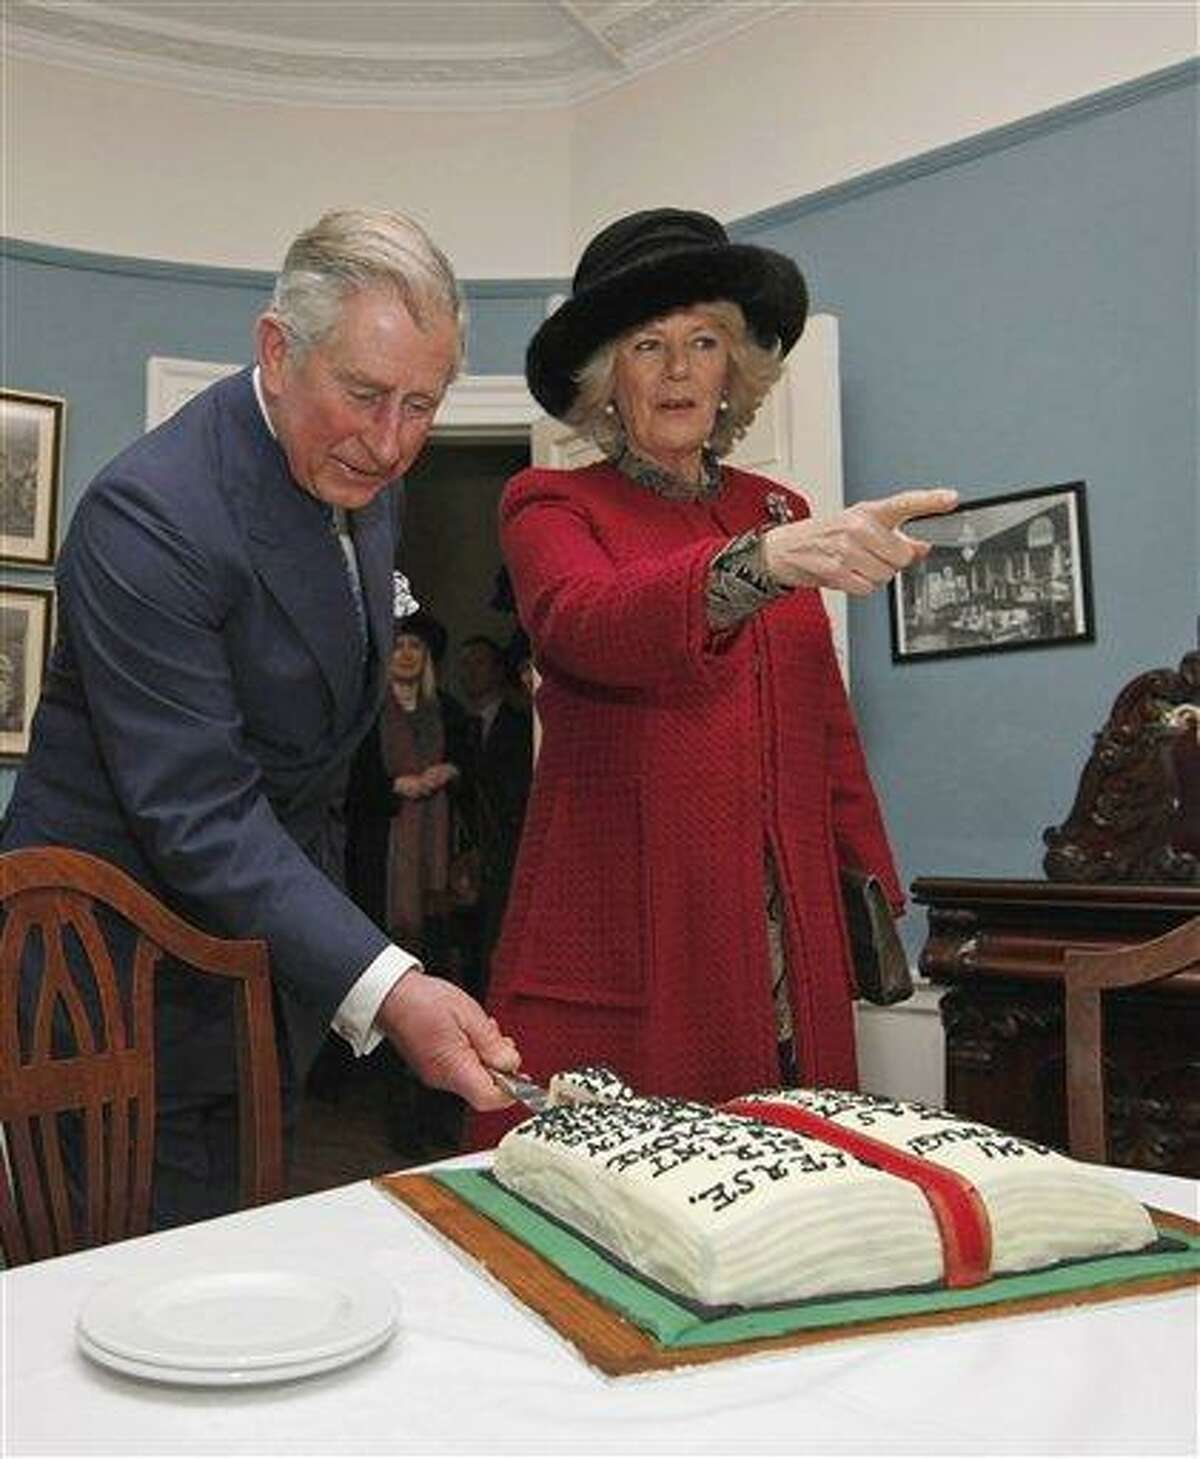 Britain's Prince Charles cuts a birthday cake in honor of Charles Dickens as he stands with his wife Camilla, Duchess of Cornwall, right, at the Dickens Museum in London Tuesday. Associated Press